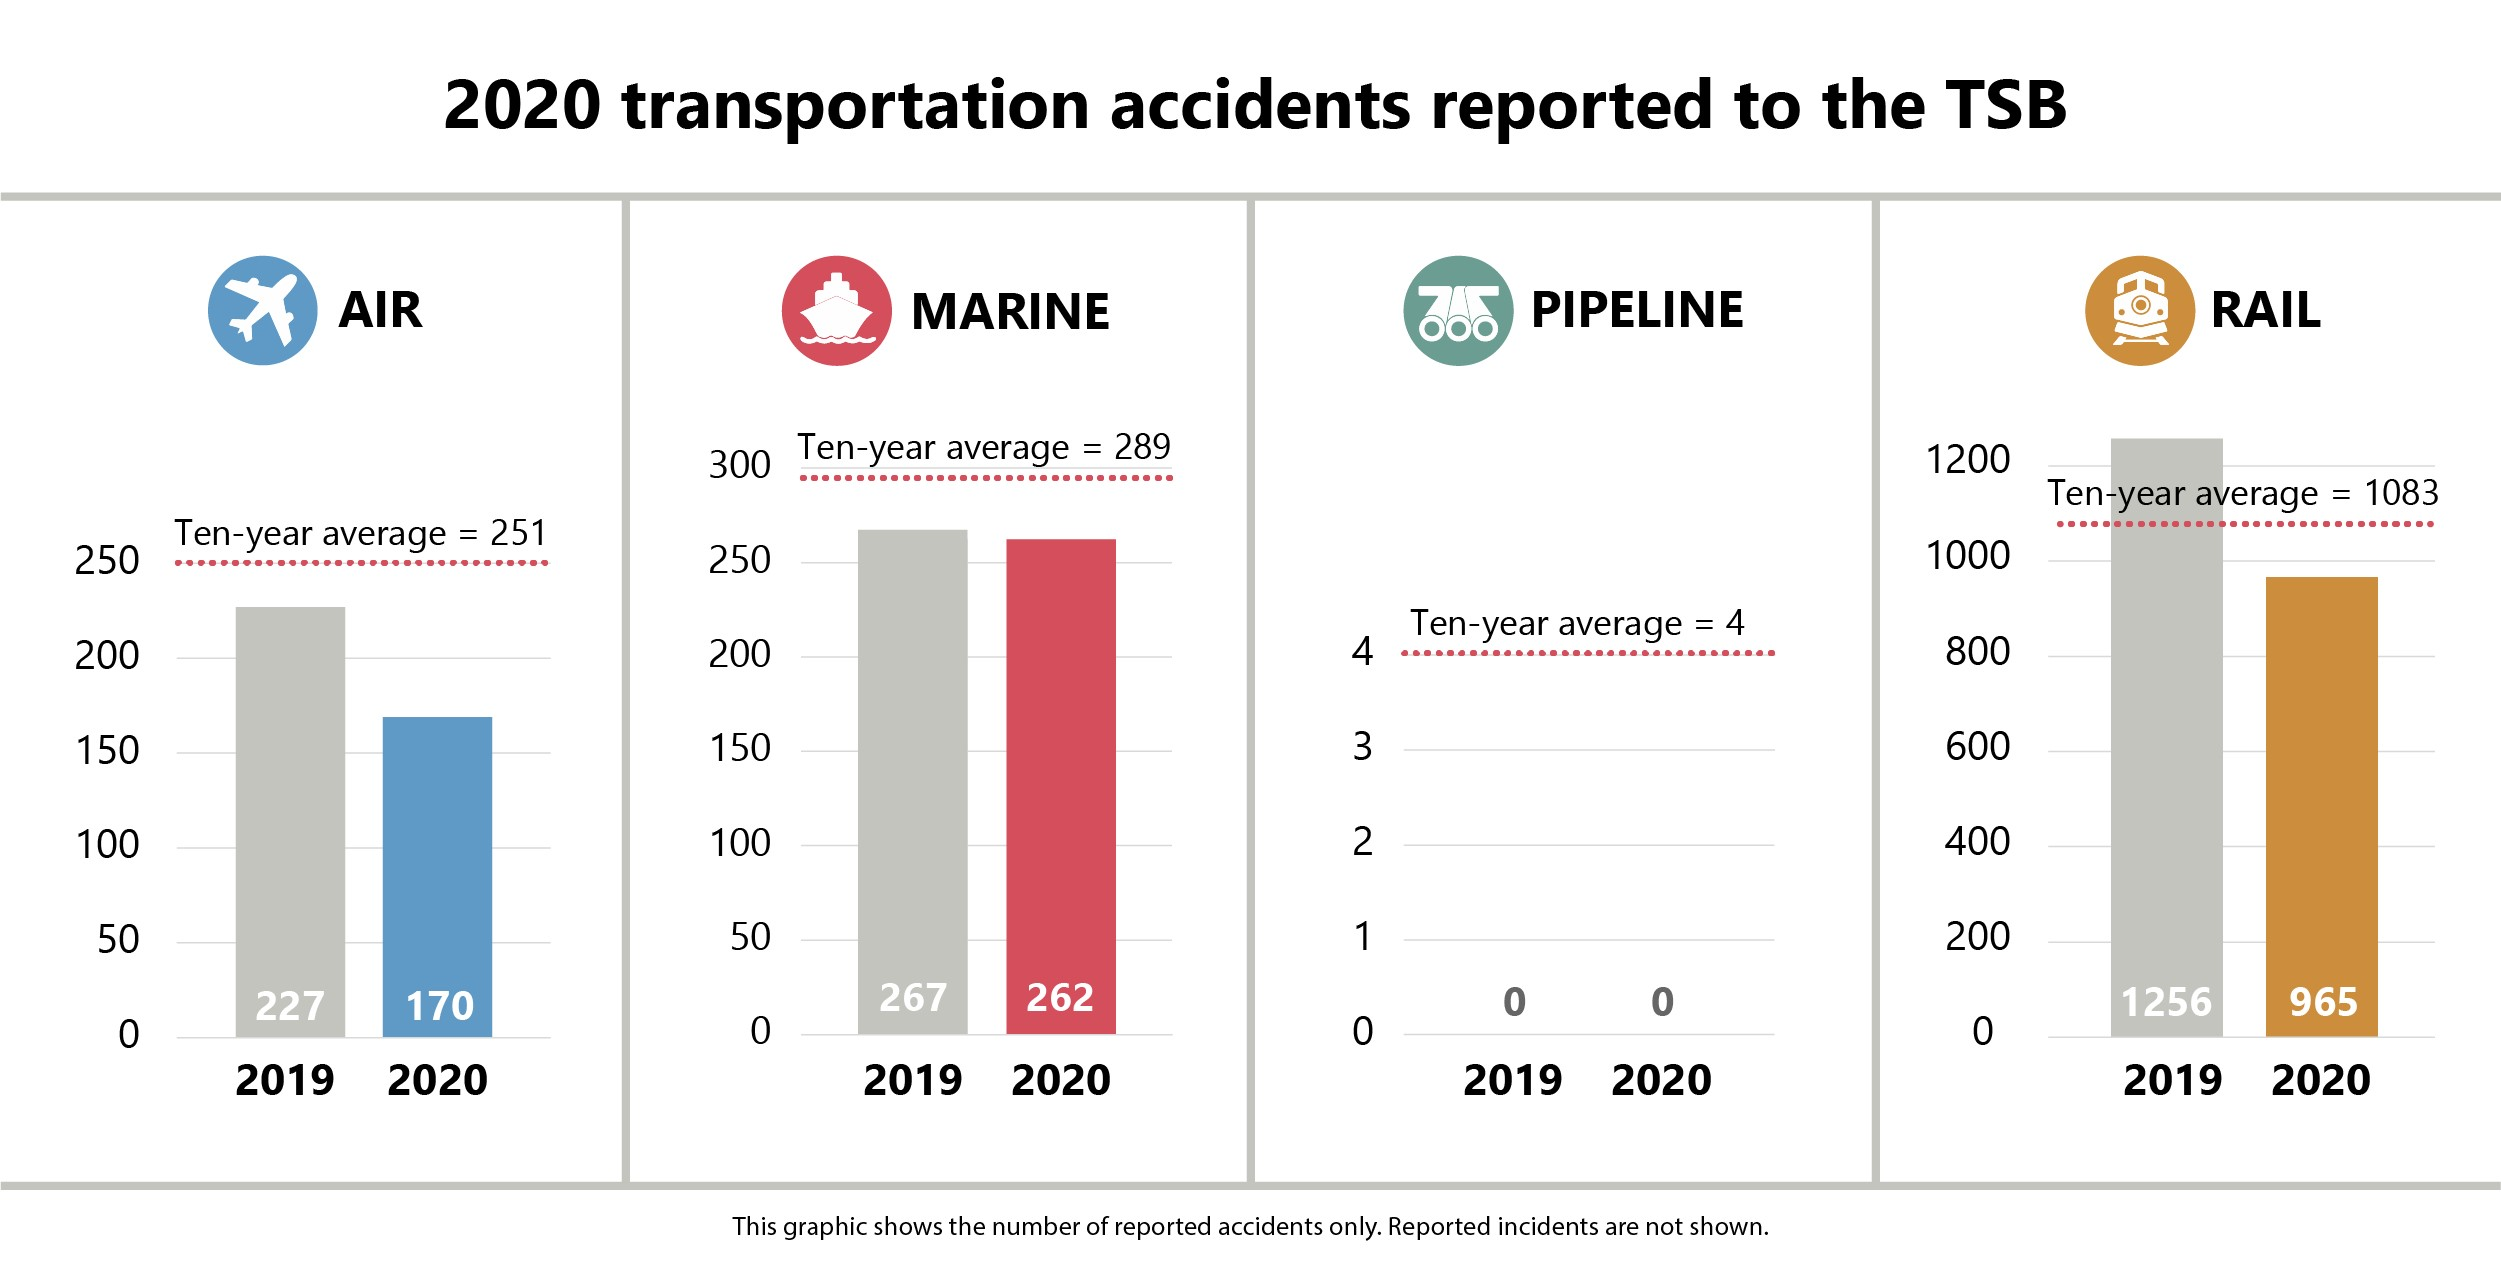 2020 transportation accidents reported to the TSB